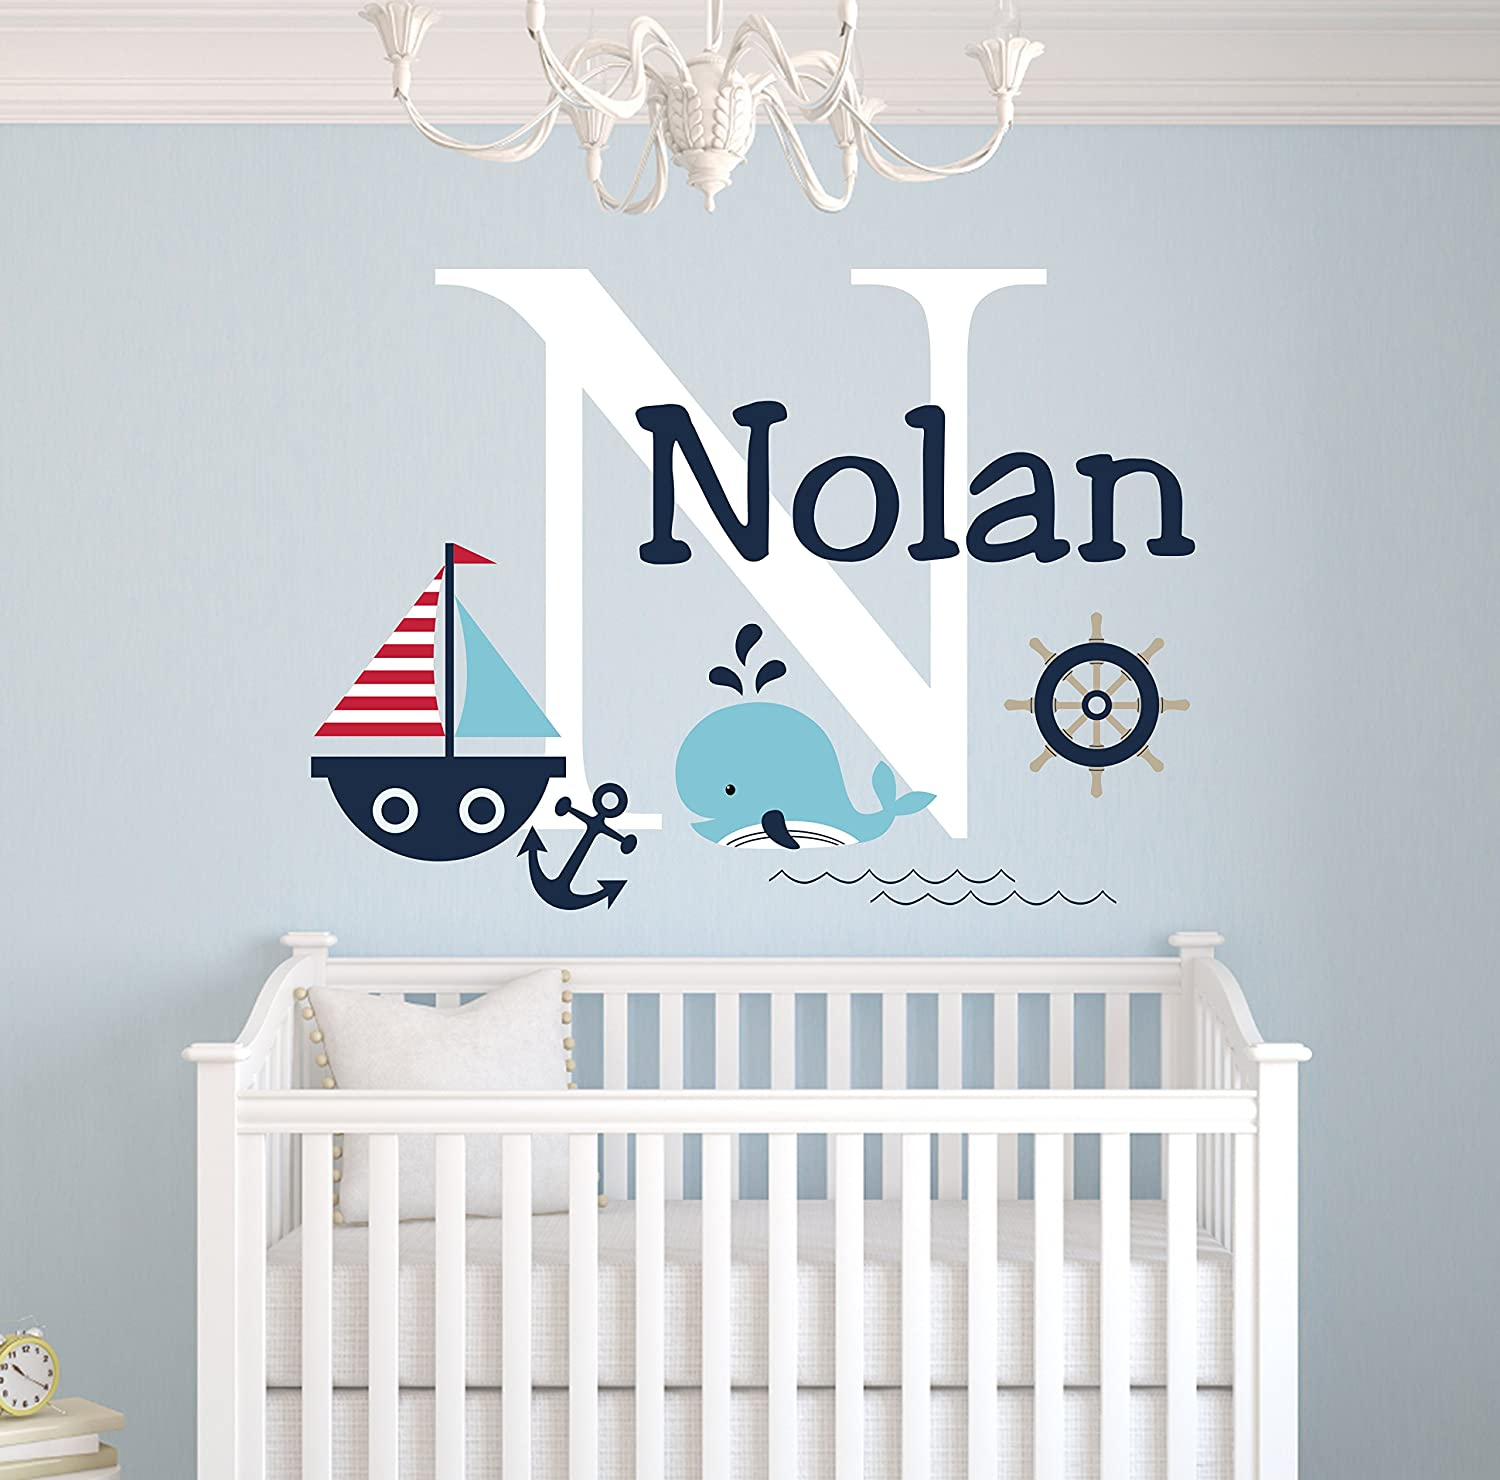 Wall Decals Personalized Name Decal Vinyl Sticker Whale Boy Baby Children Nautical Nursery Bedroom Decor Art Murals US6